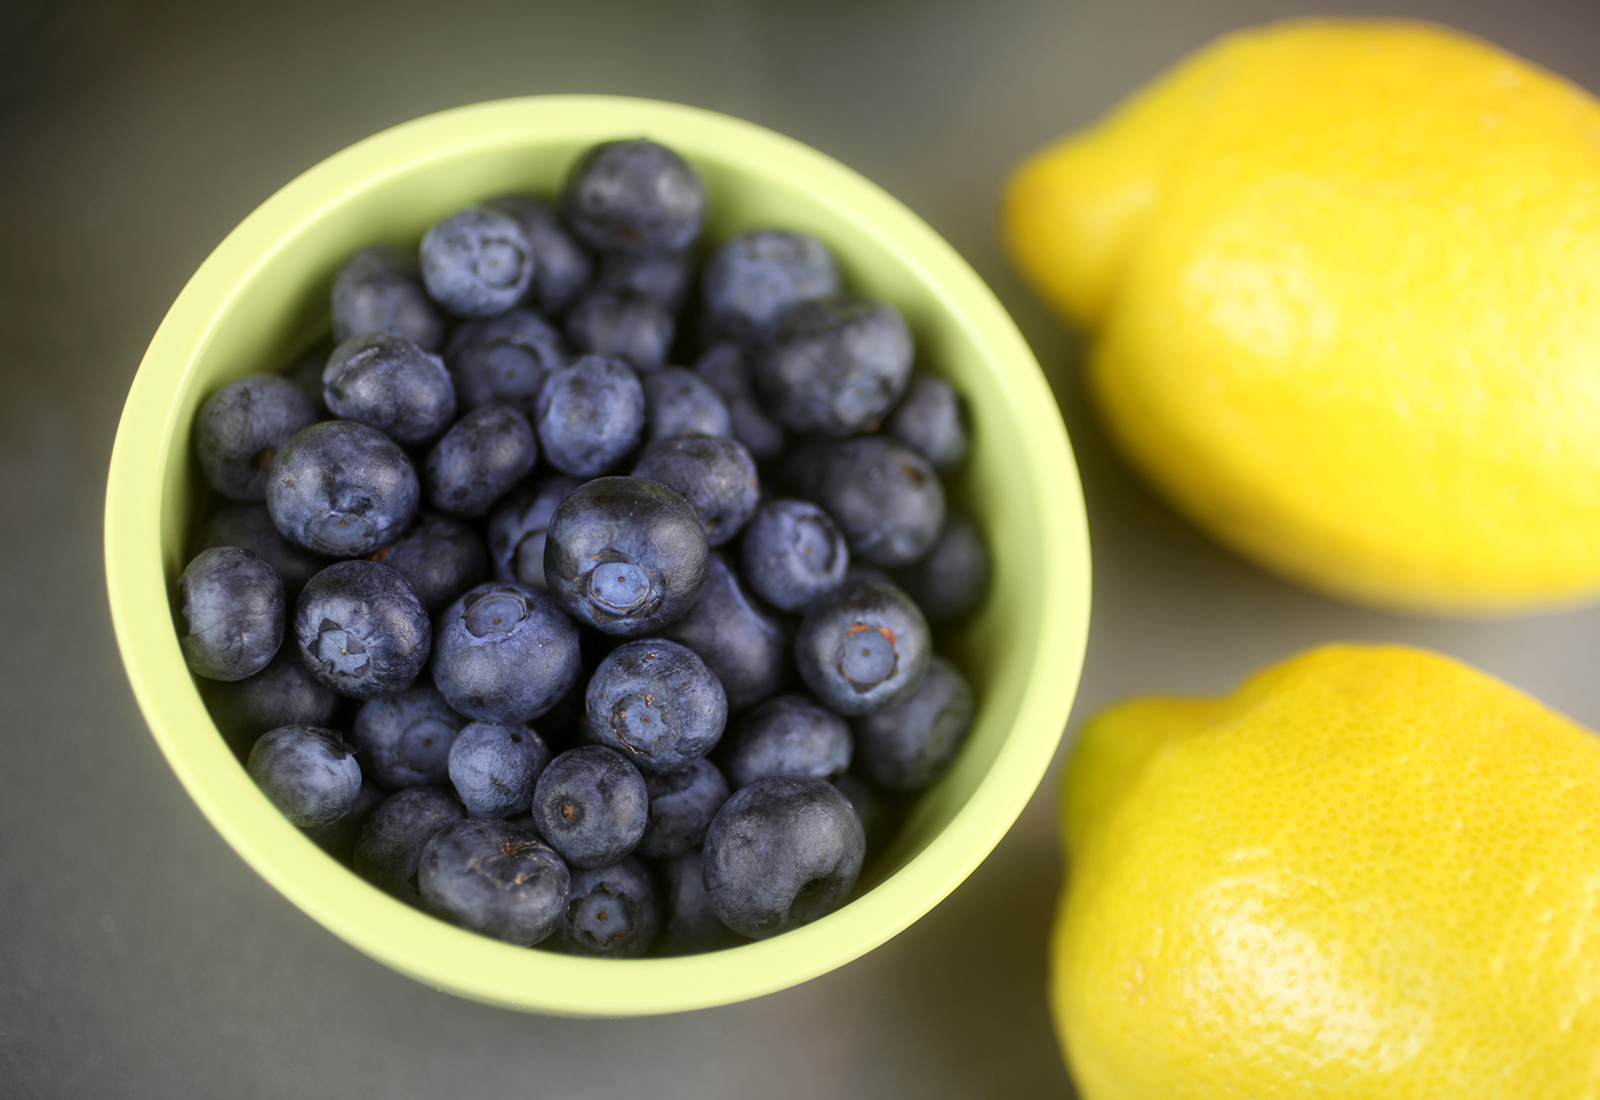 Lemon and Blueberries